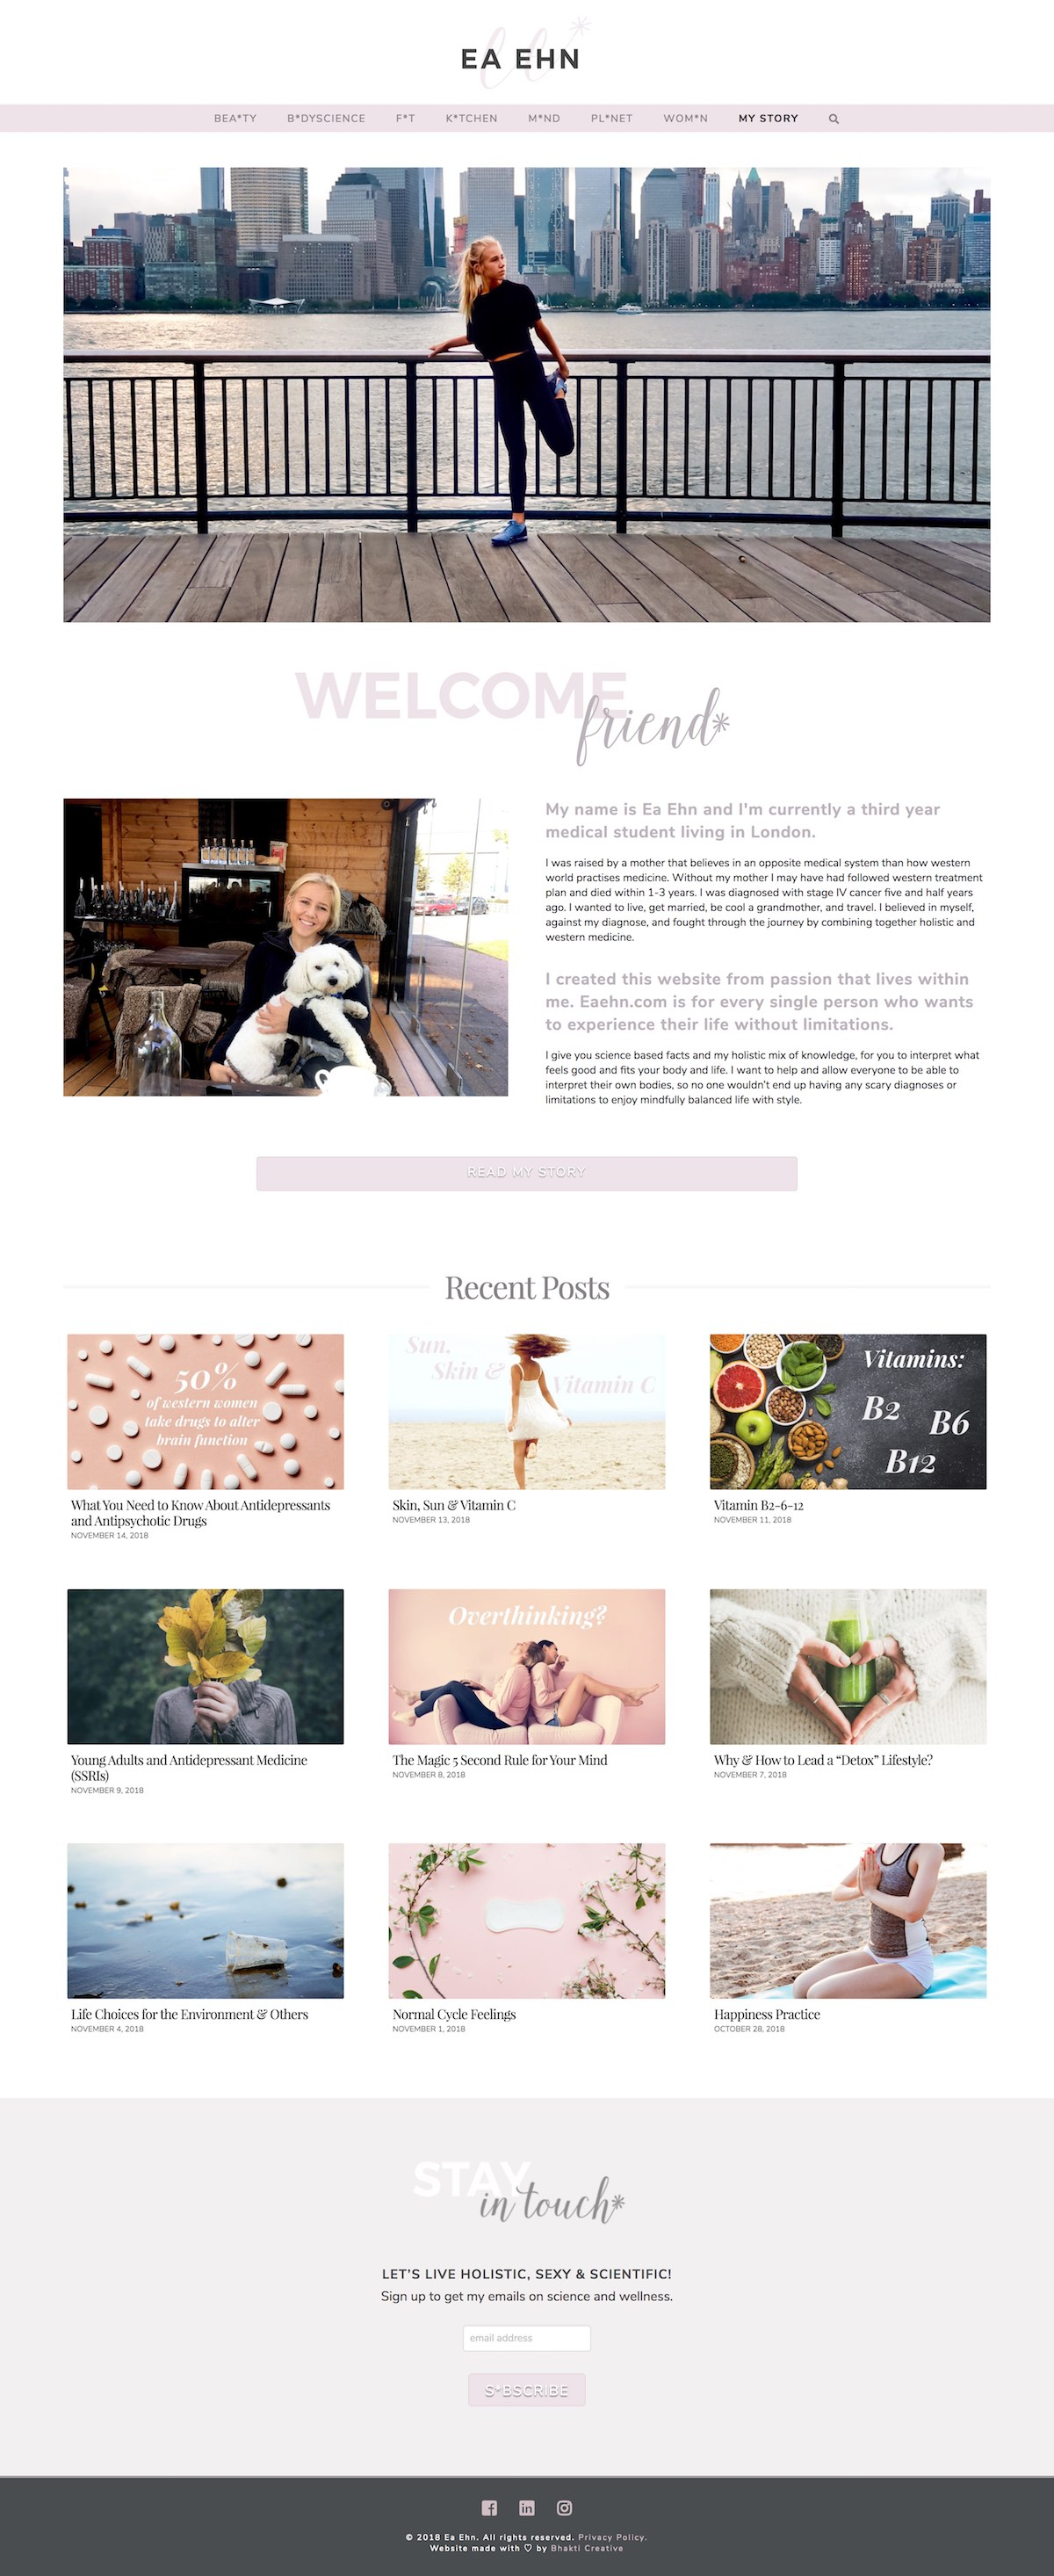 eaehn-web-design-for-influencers-in-wellness